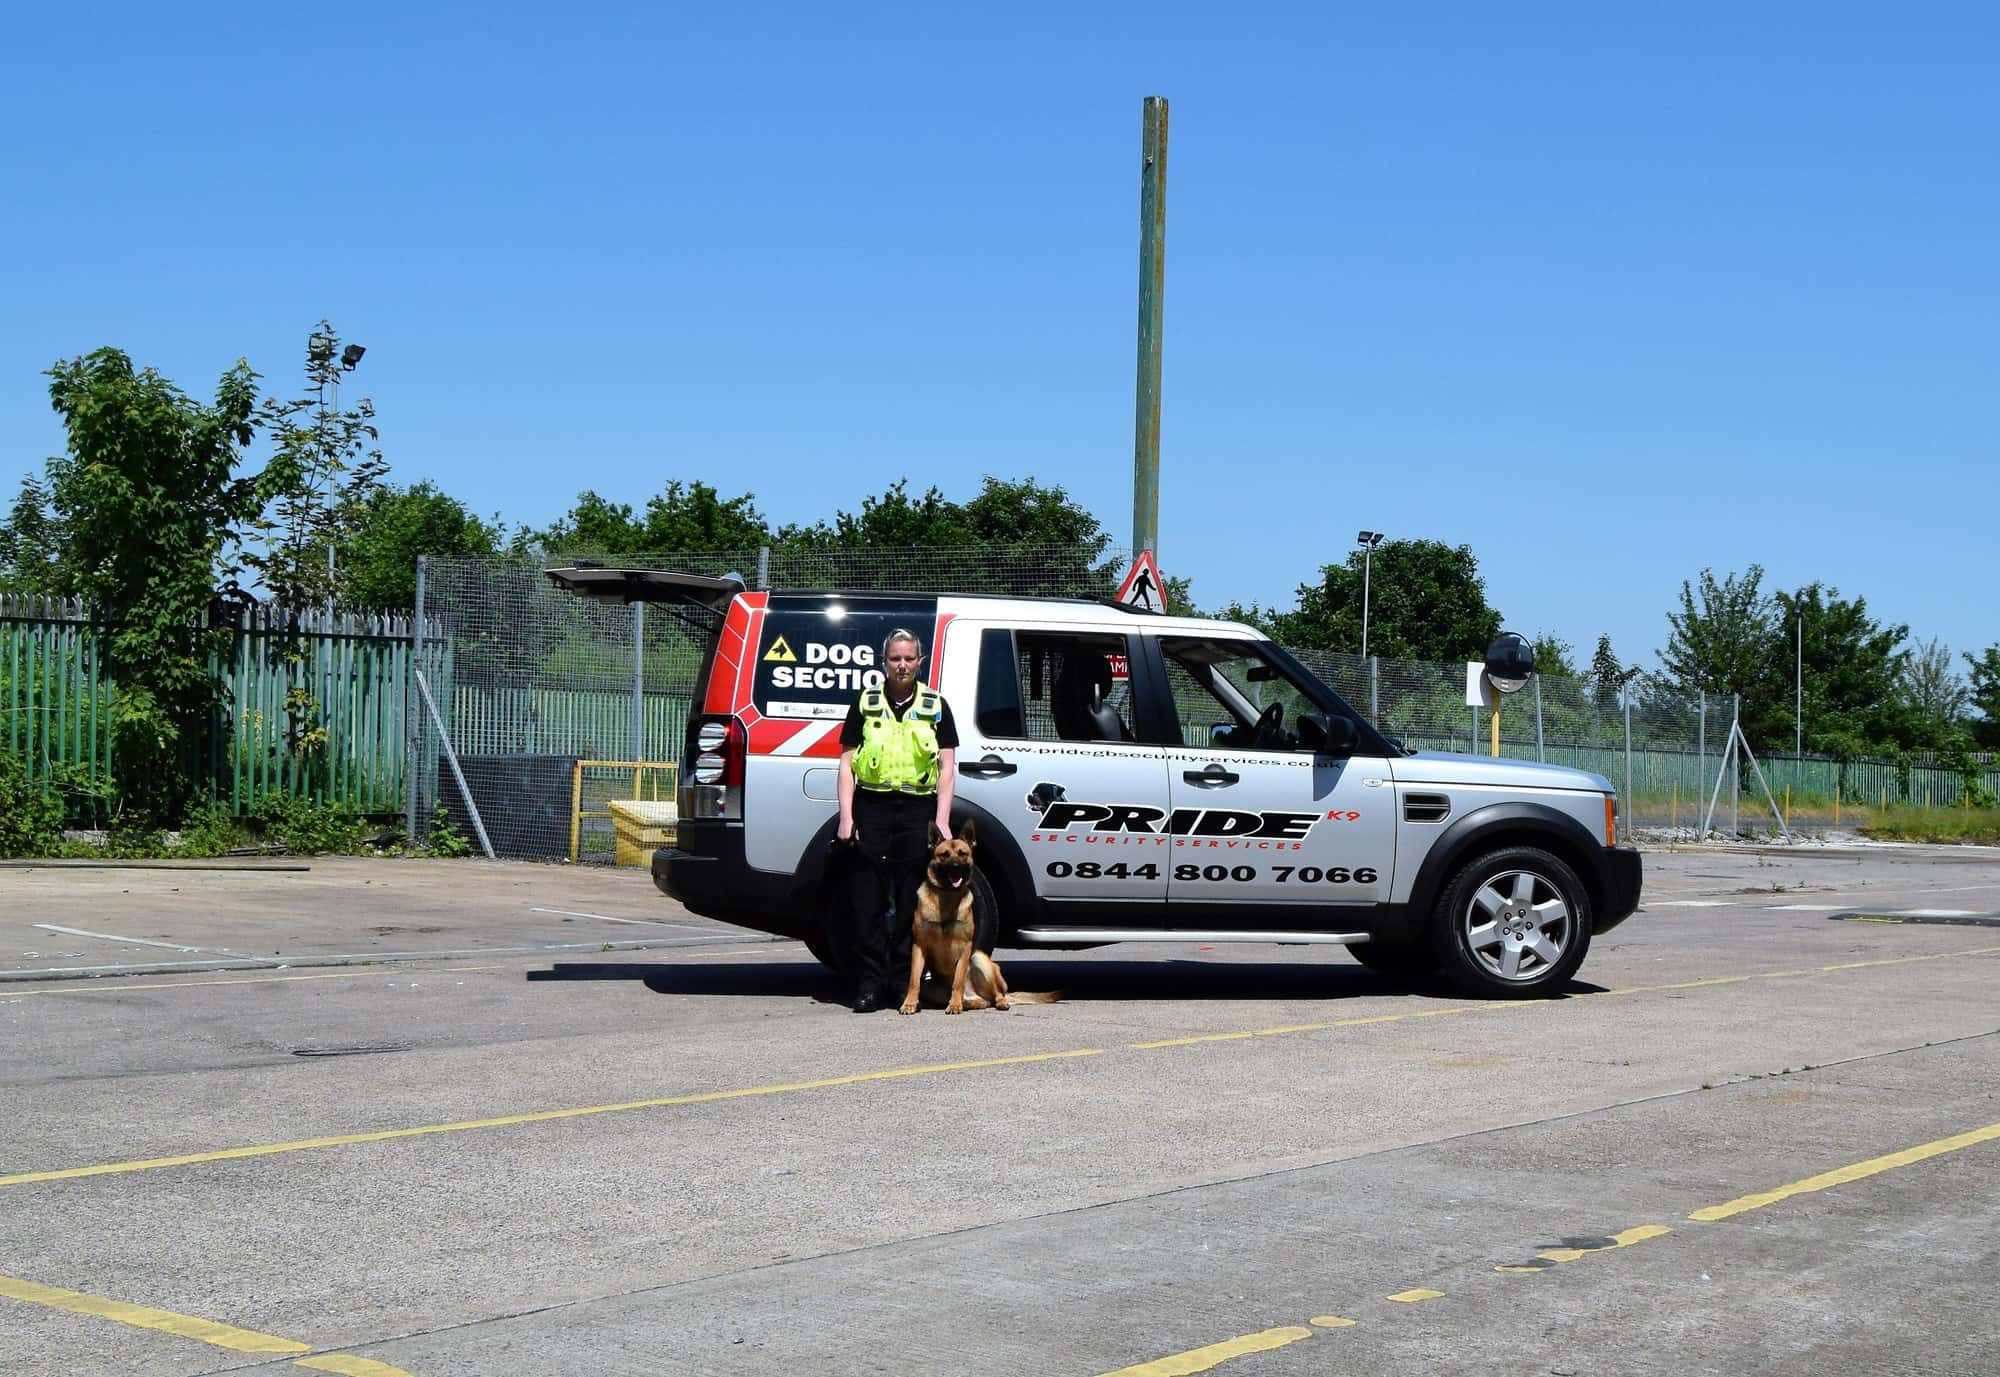 Security Services Pride GB Handler and Dog